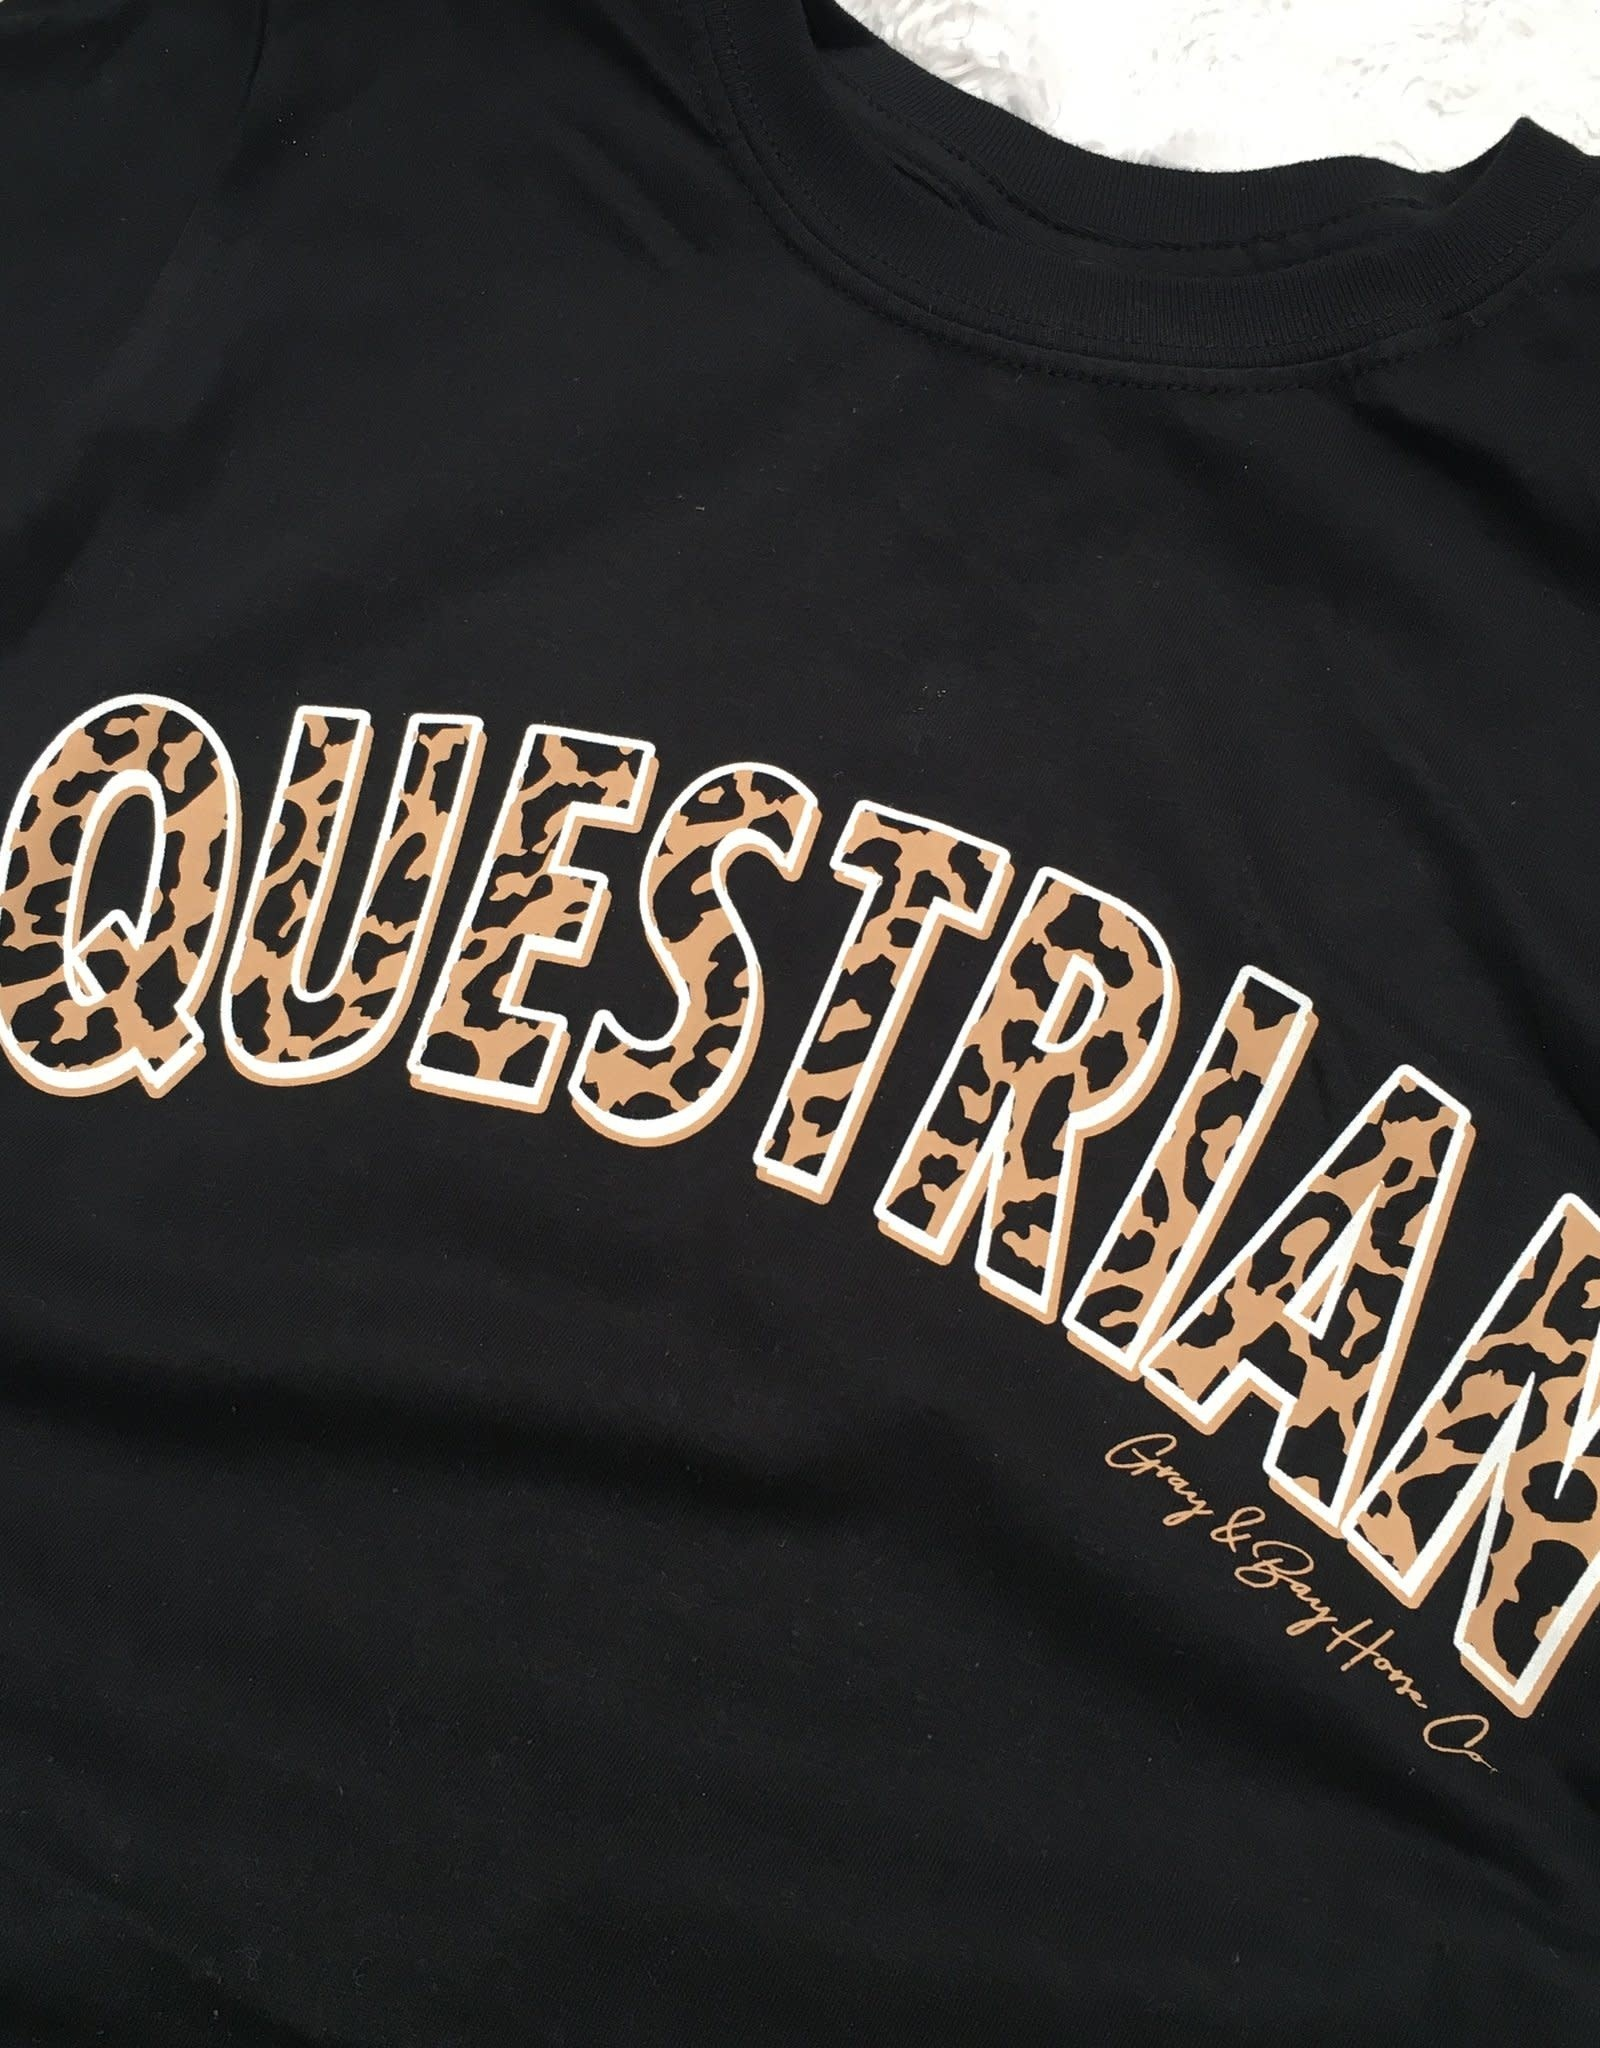 GRAY & BAY HORSE CO. The Leopard EQUESTRIAN T-Shirt SLIM FIT